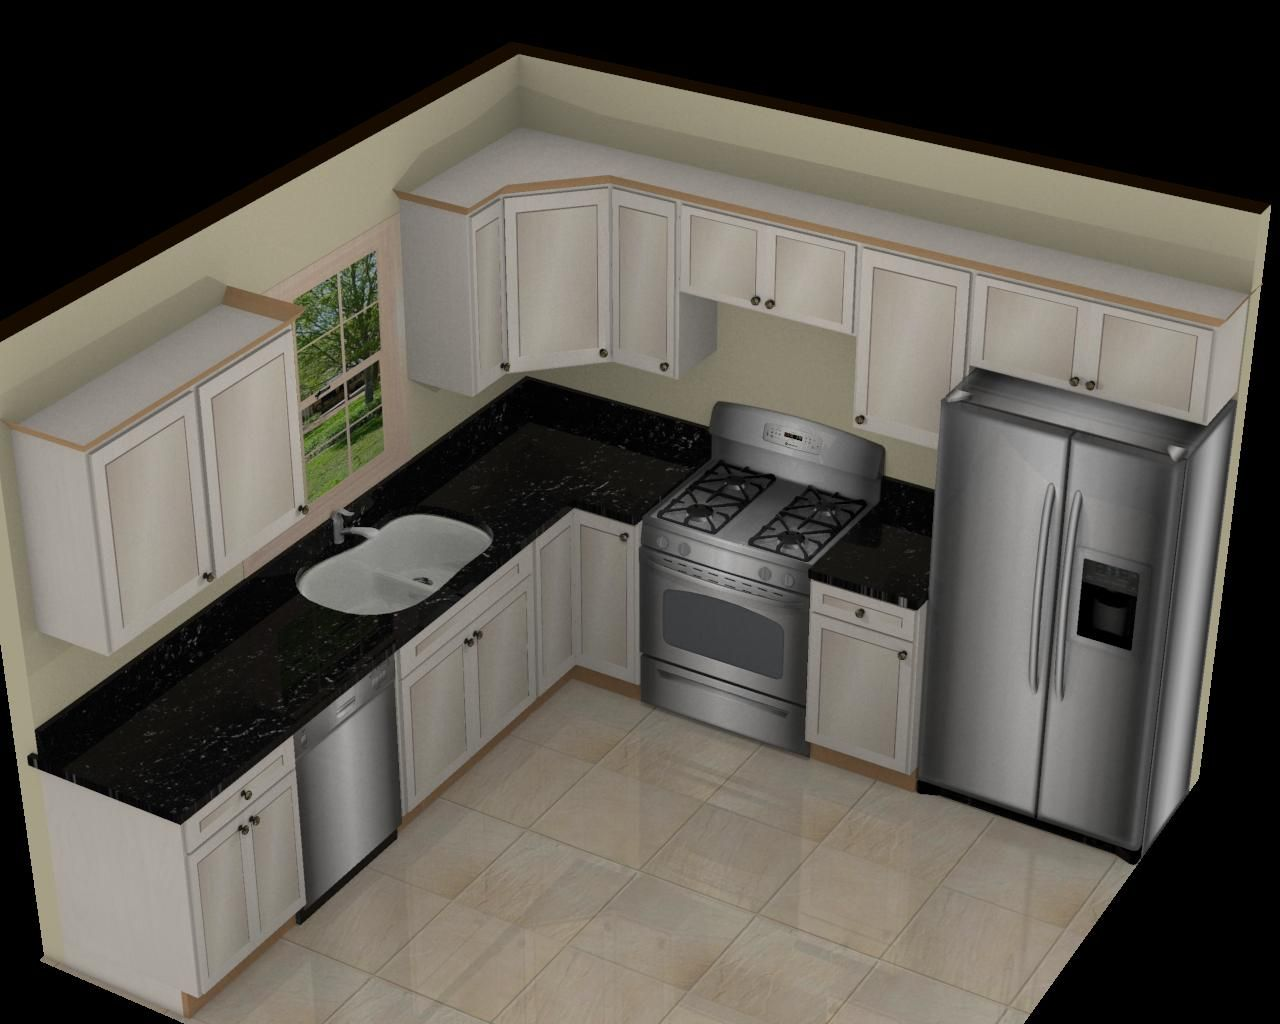 Small Kitchen Design Layout Ideas kitchen awesome l shape white marble 10x10 3d kitchen plan with single window and Find This Pin And More On Kitchen 10 10 L Shaped Kitchen Designs